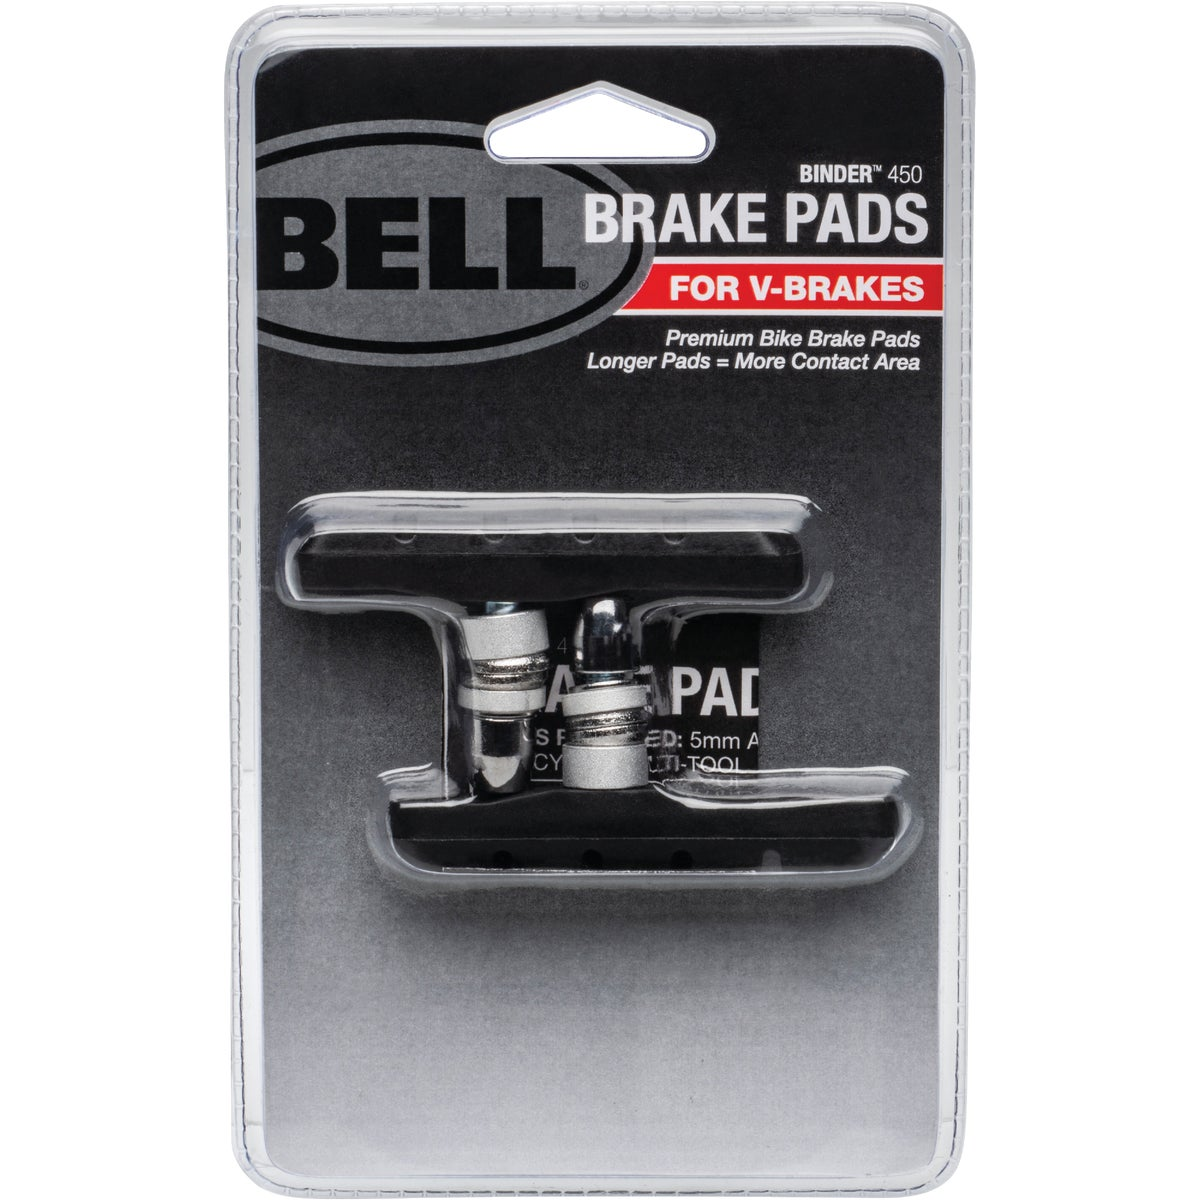 V STOP BRAKE PADS - 7015915 by Bell Sports